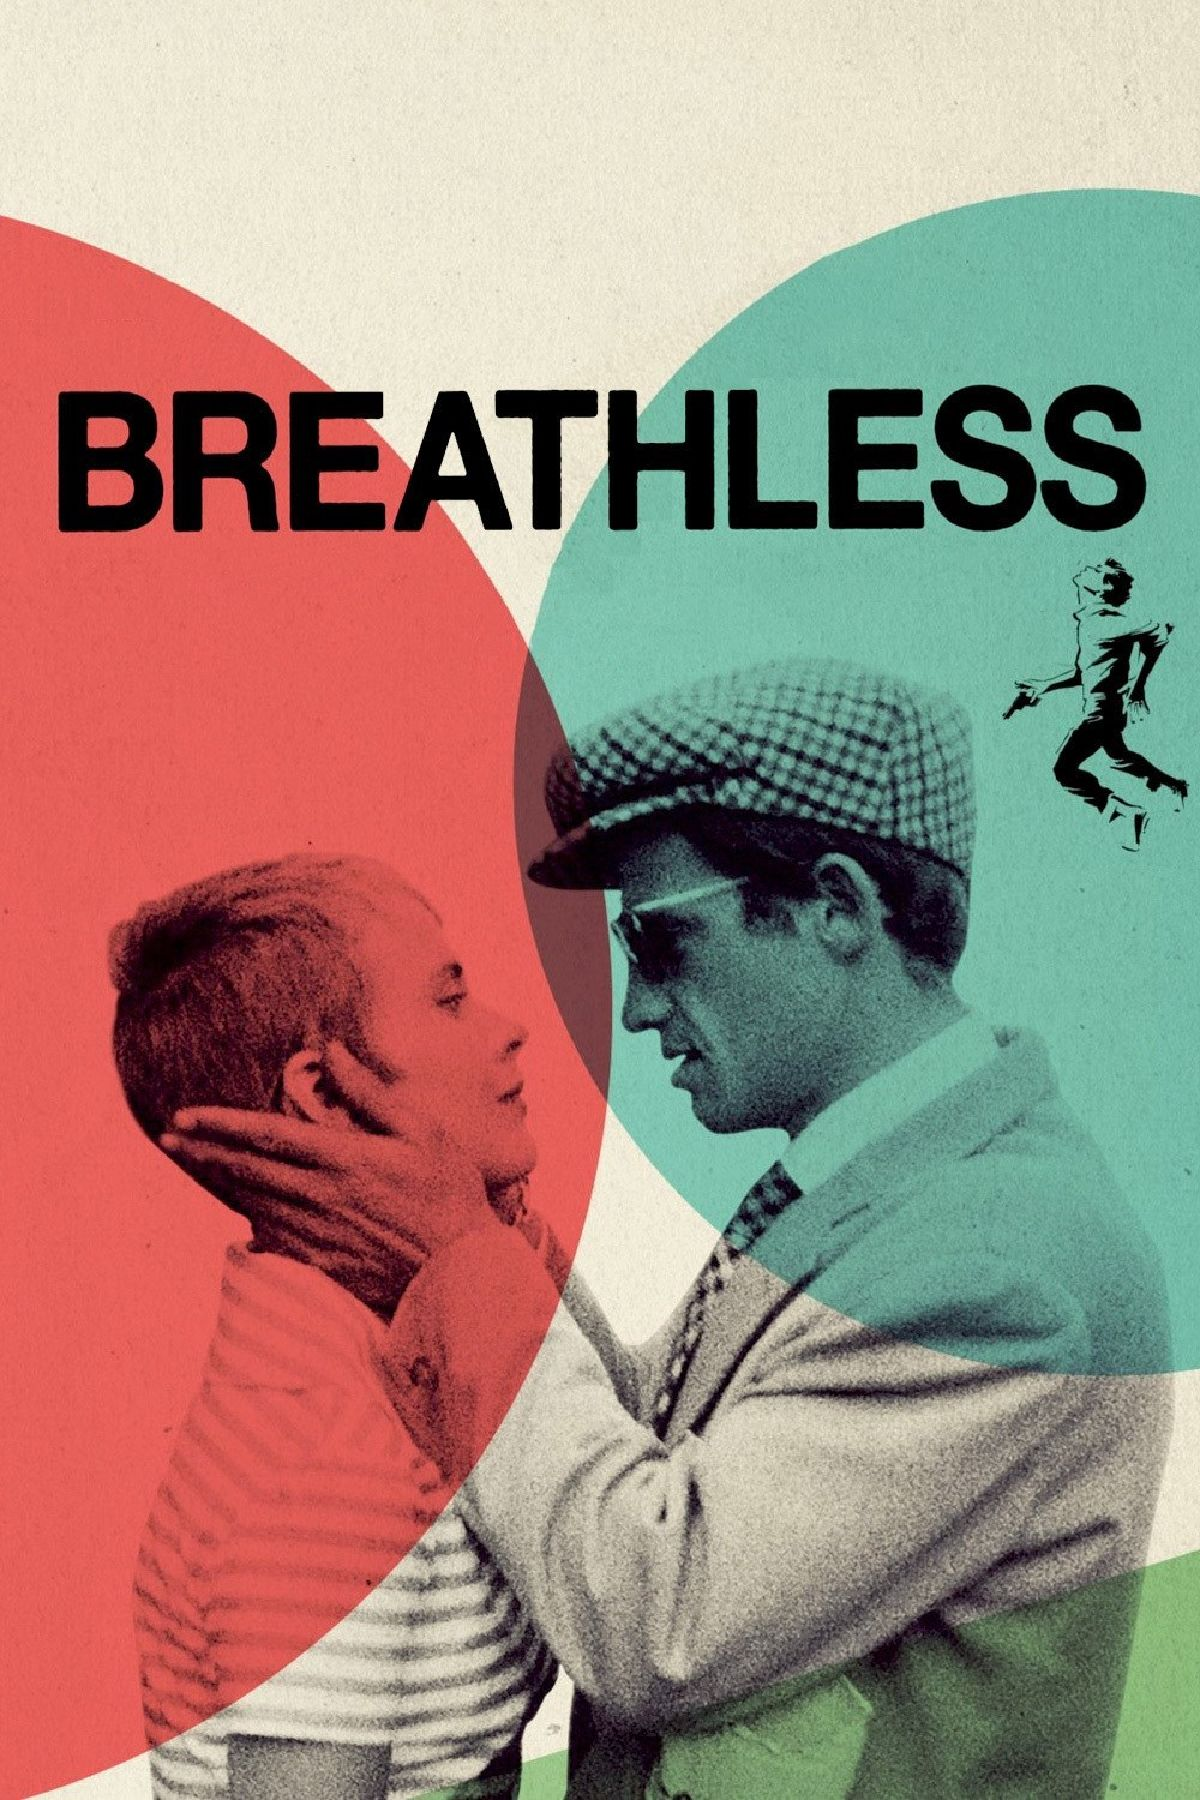 'Breathless' movie poster